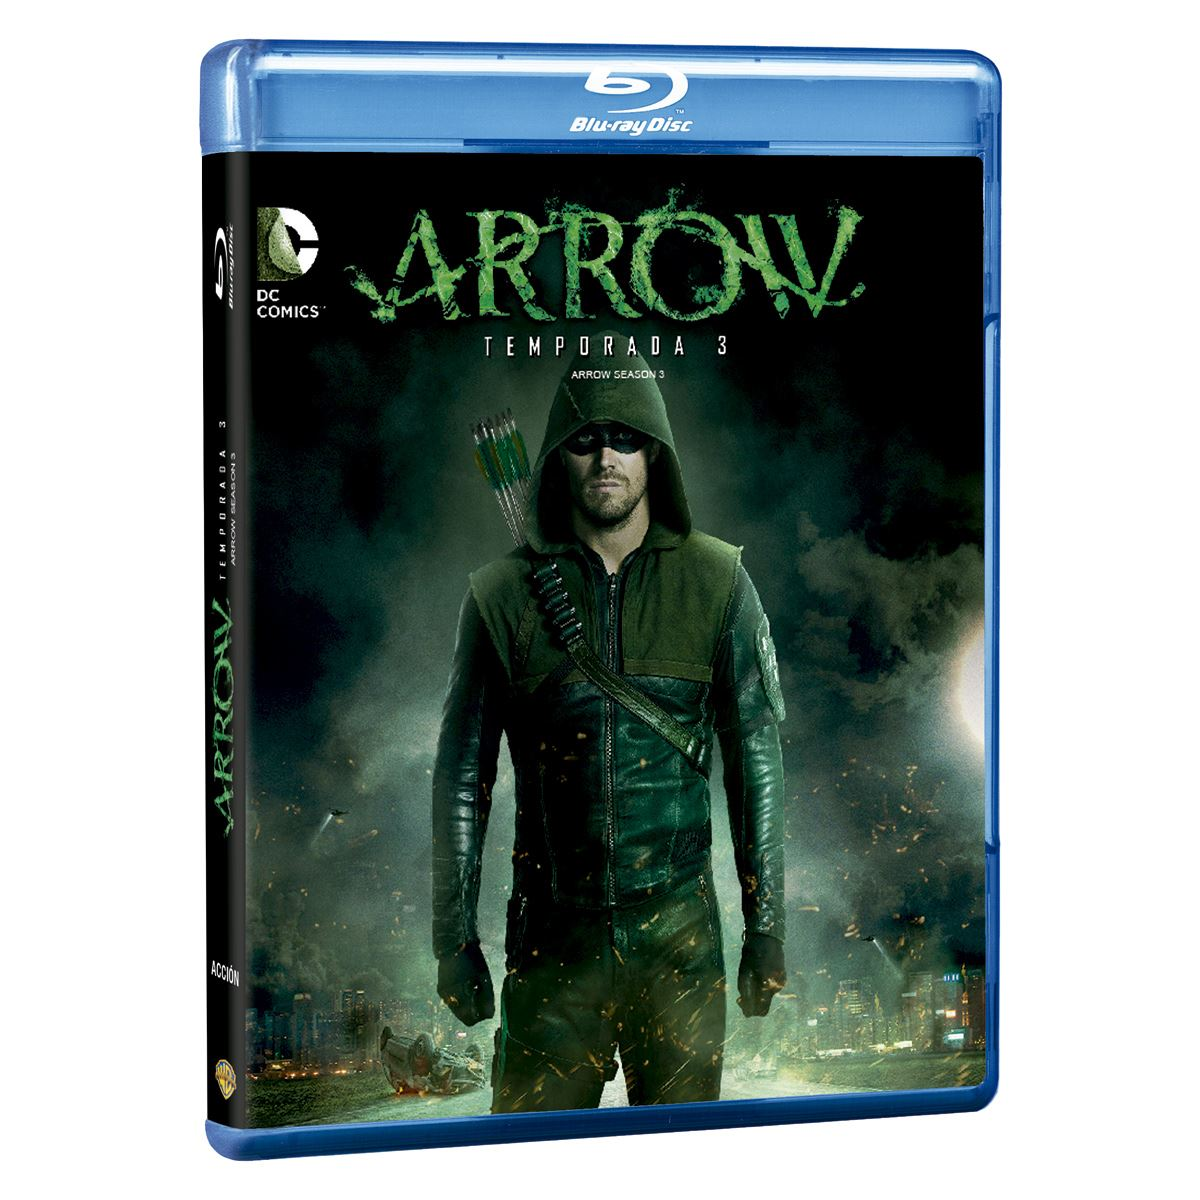 Br arrow, temporada 3  - Sanborns